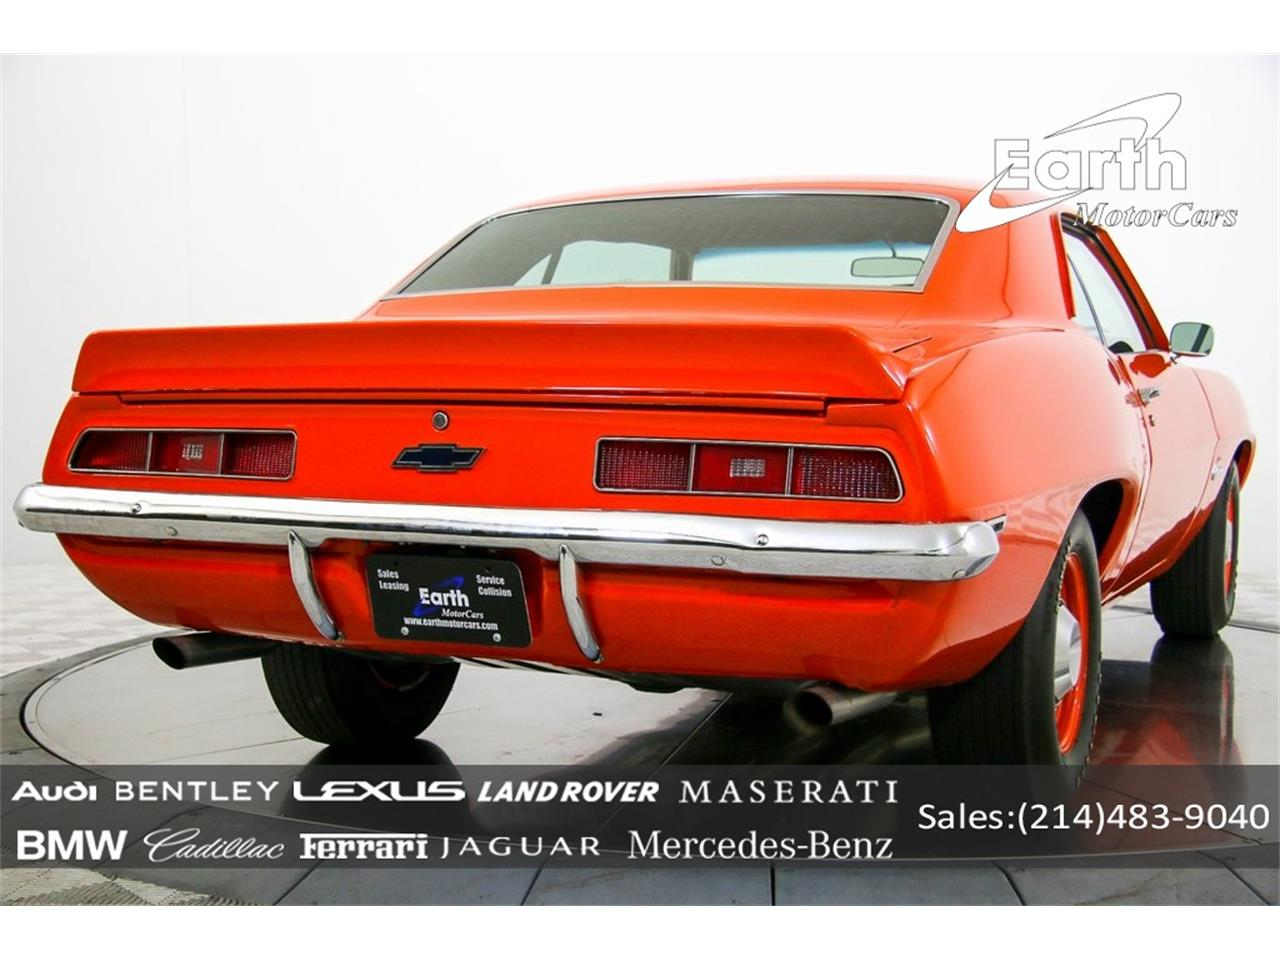 Large Picture of Classic '69 Camaro Offered by Earth Motorcars - QYAH